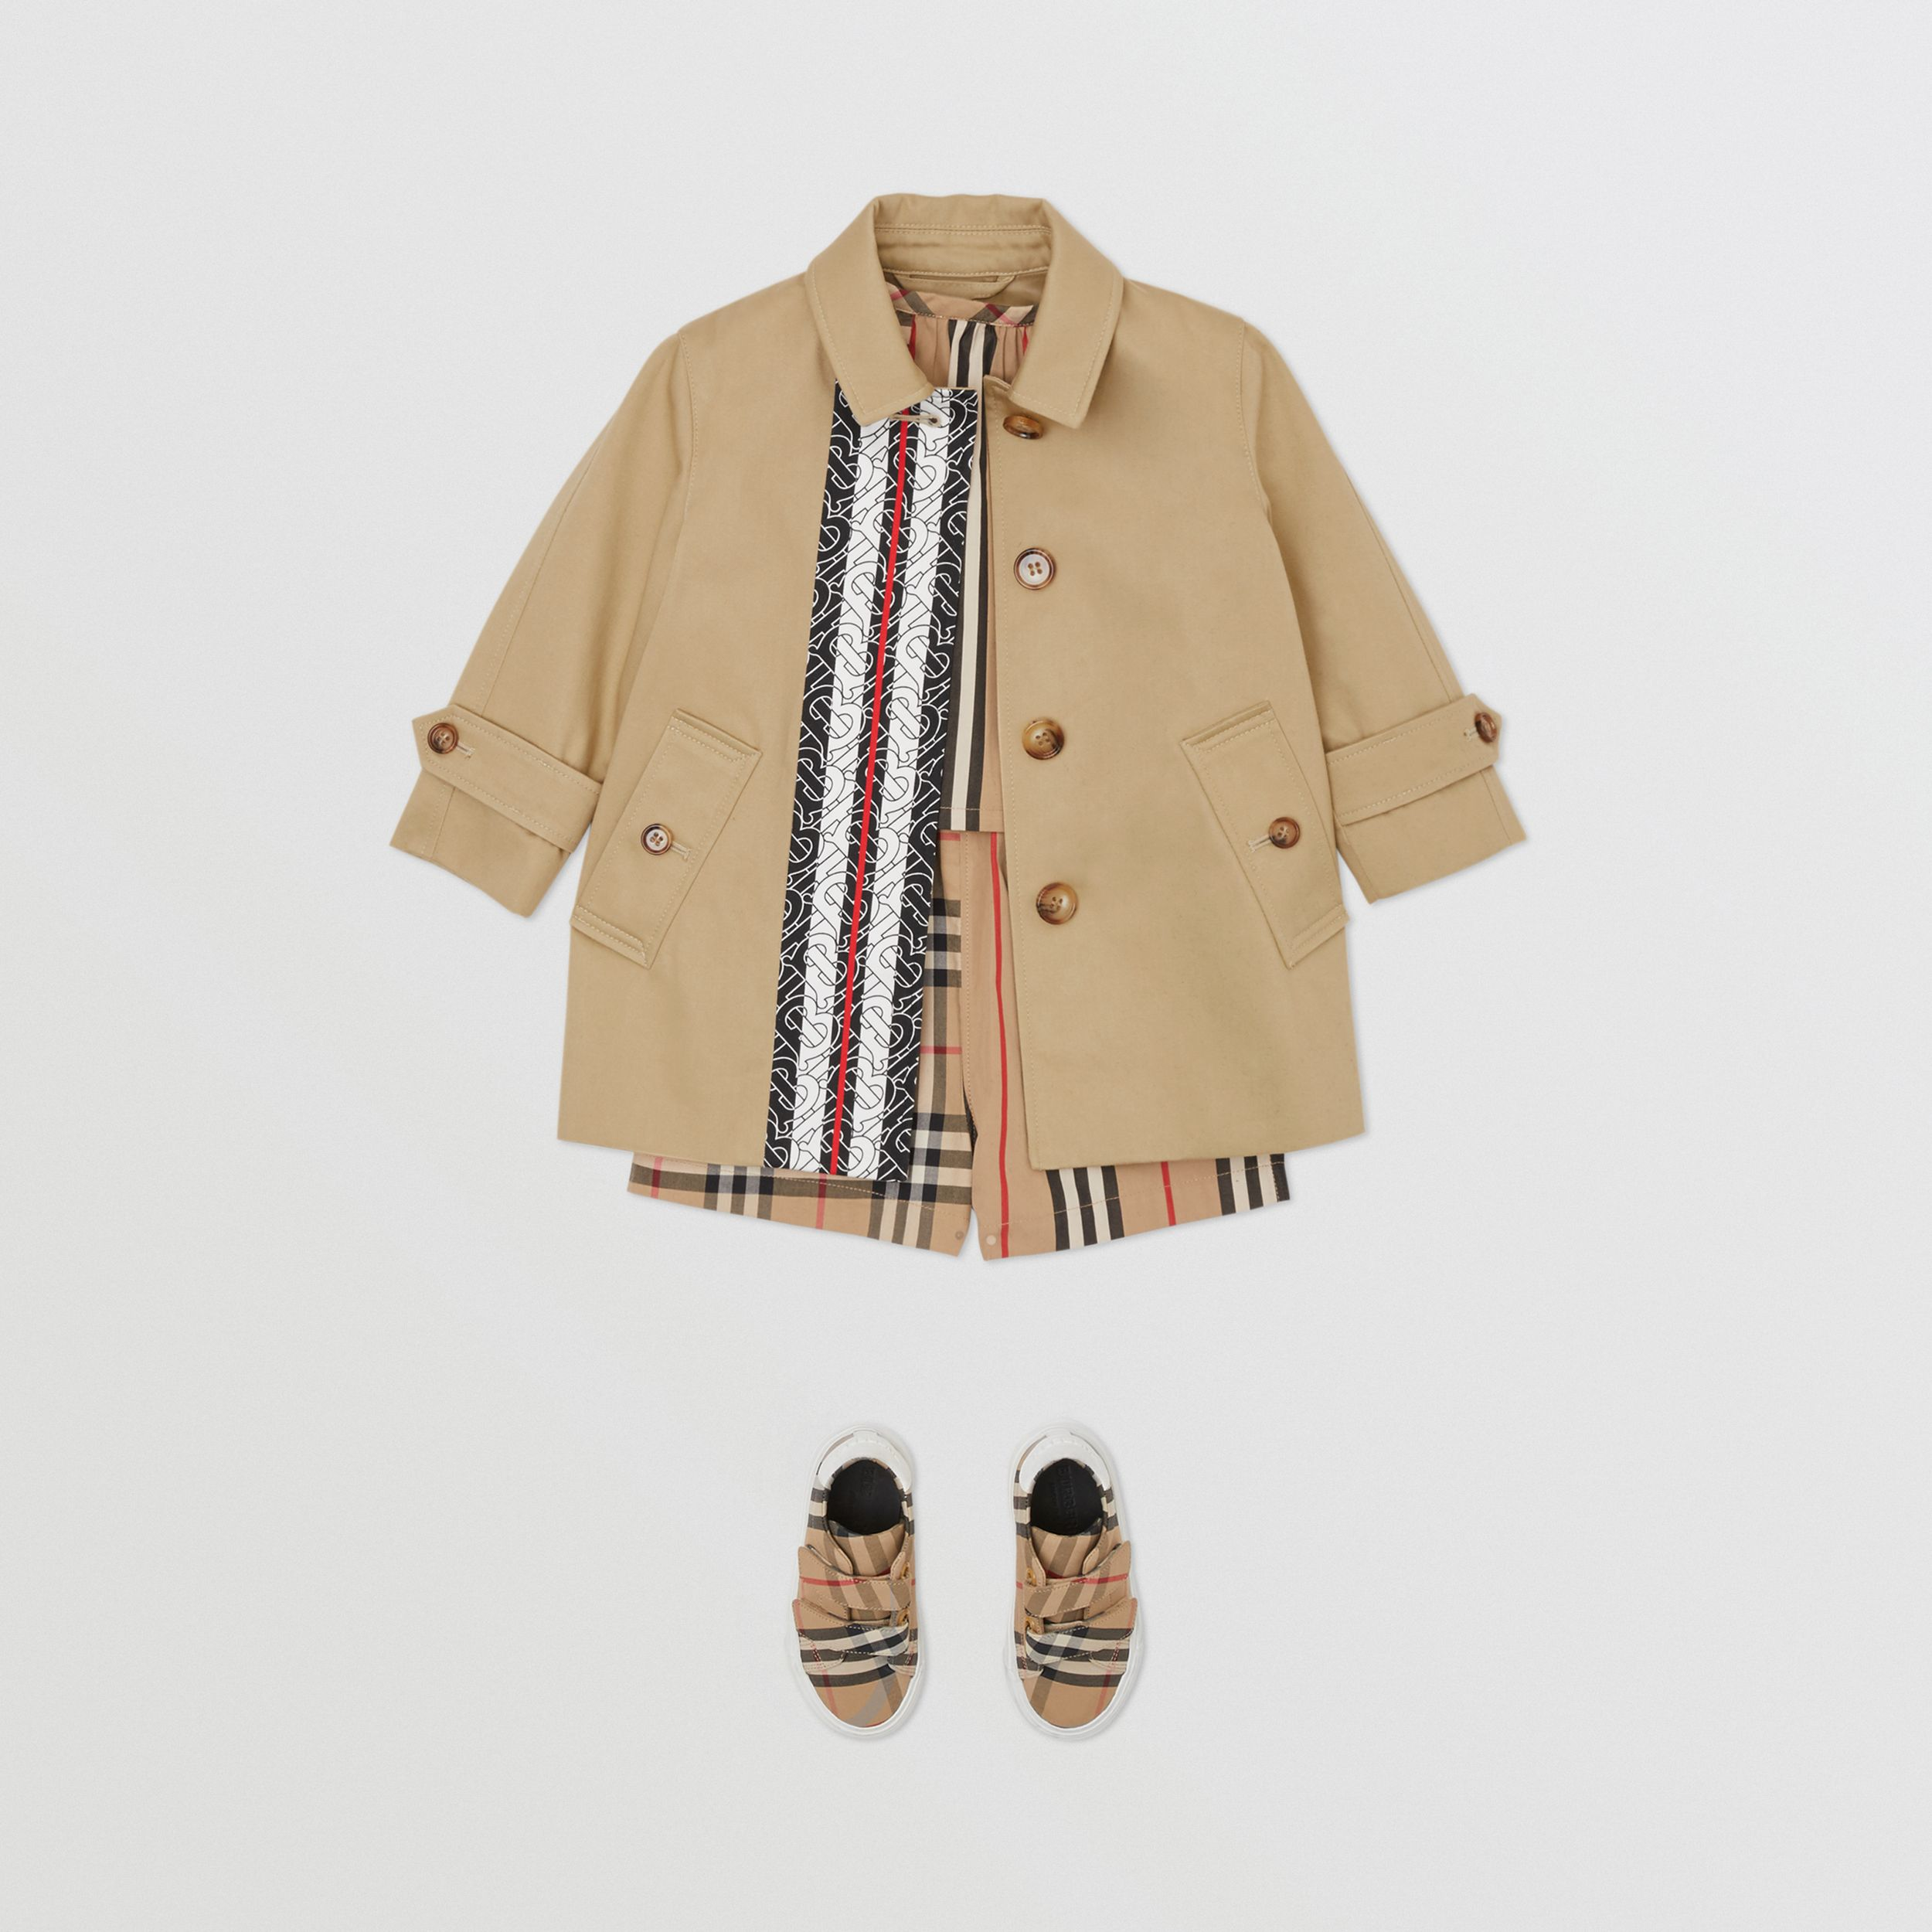 Monogram Stripe Print Cotton Car Coat in Honey - Children | Burberry - 3